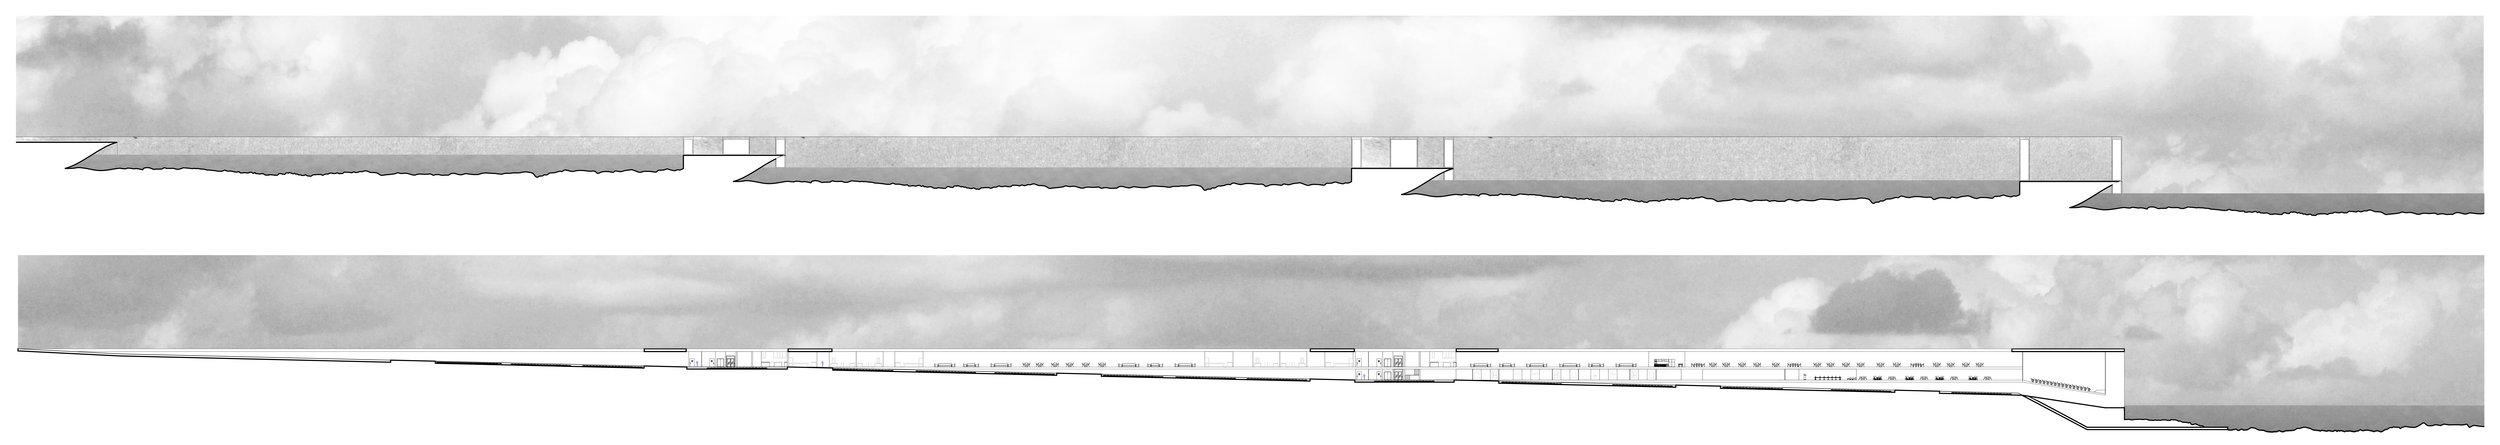 Elevation and section through single inhabitable retaining wall, showing peeling floor plans and mixed-use programming.